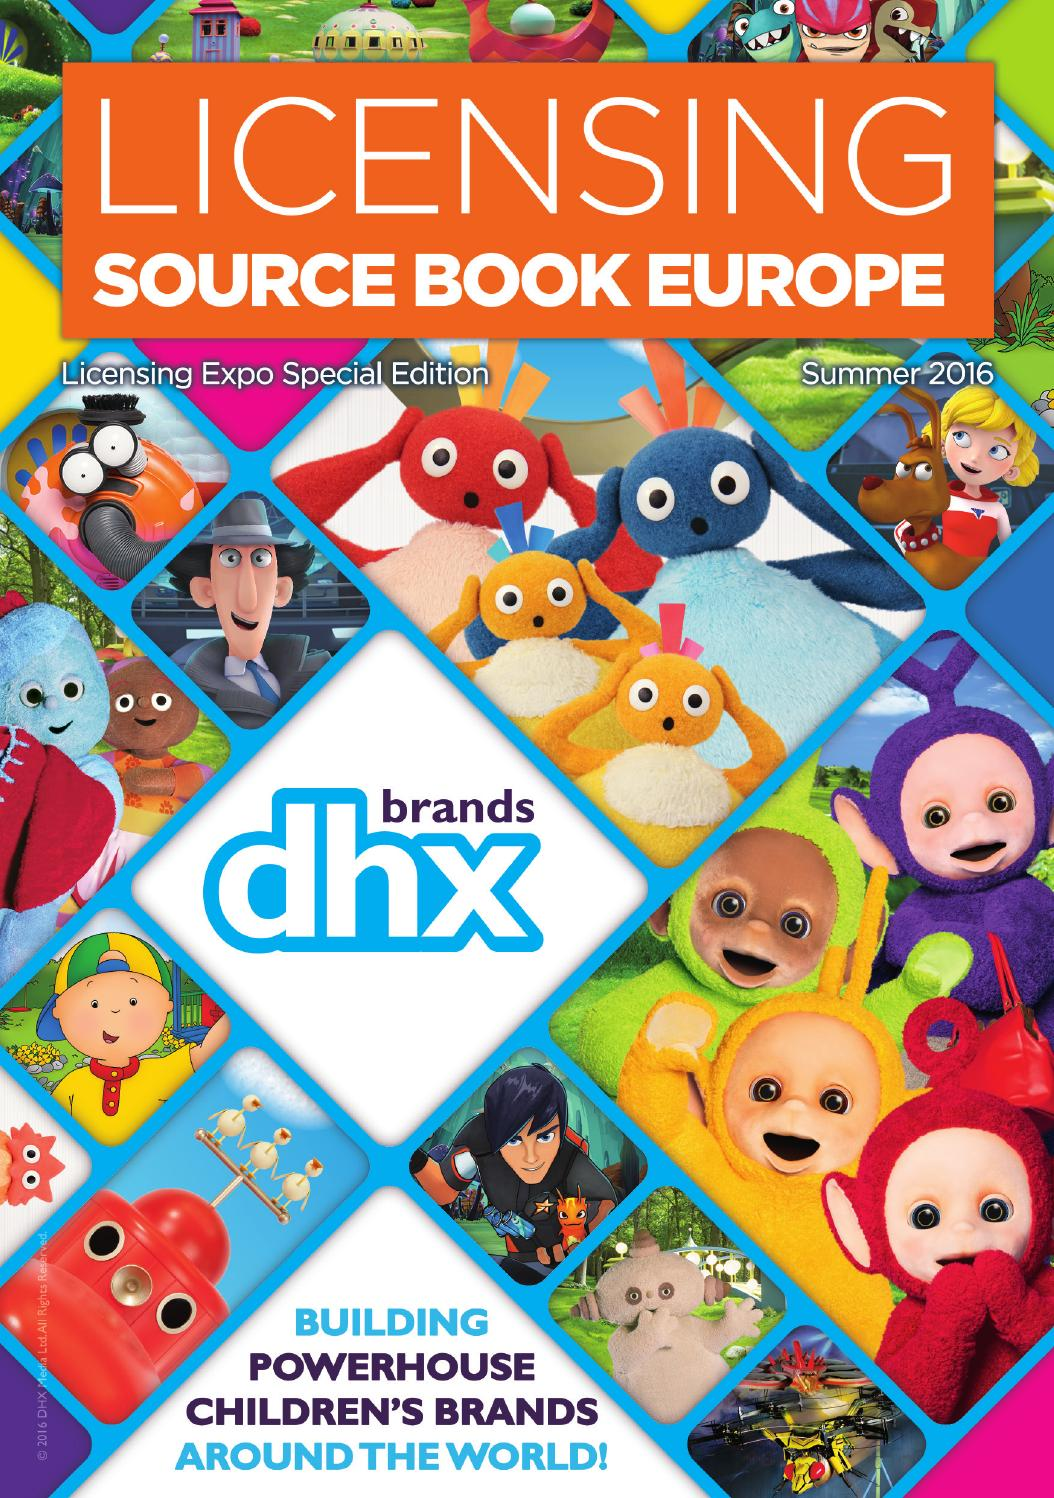 Licensing Source Book Europe Summer 2016 Issue By Max